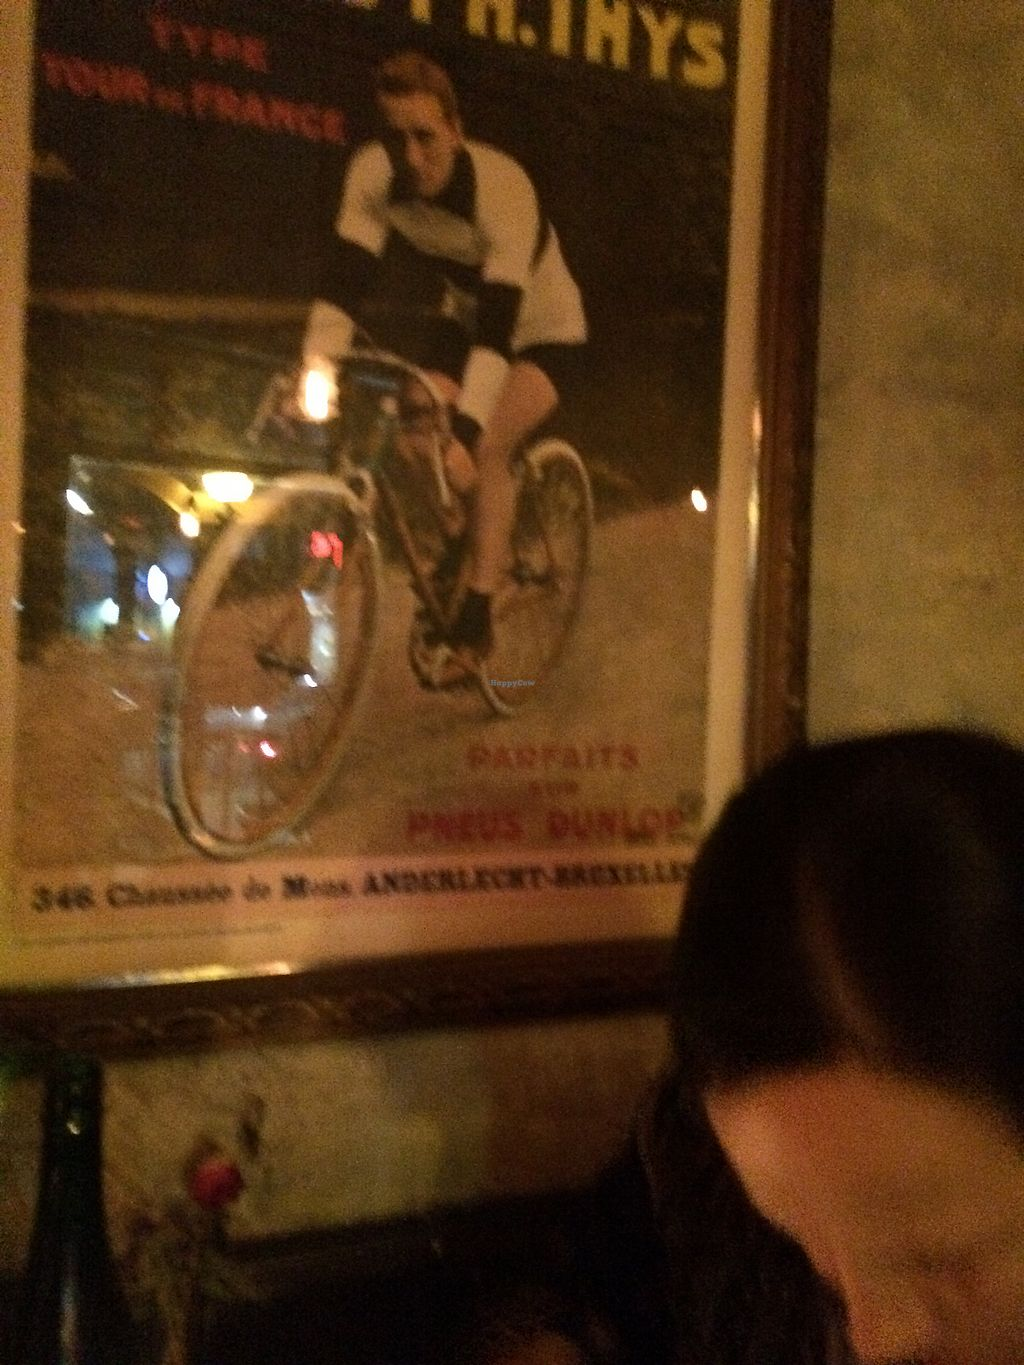 """Photo of Bar Velo  by <a href=""""/members/profile/User"""">User</a> <br/>I should have photographed the food but was too busy eating it and forgot  <br/> November 23, 2017  - <a href='/contact/abuse/image/88497/328476'>Report</a>"""